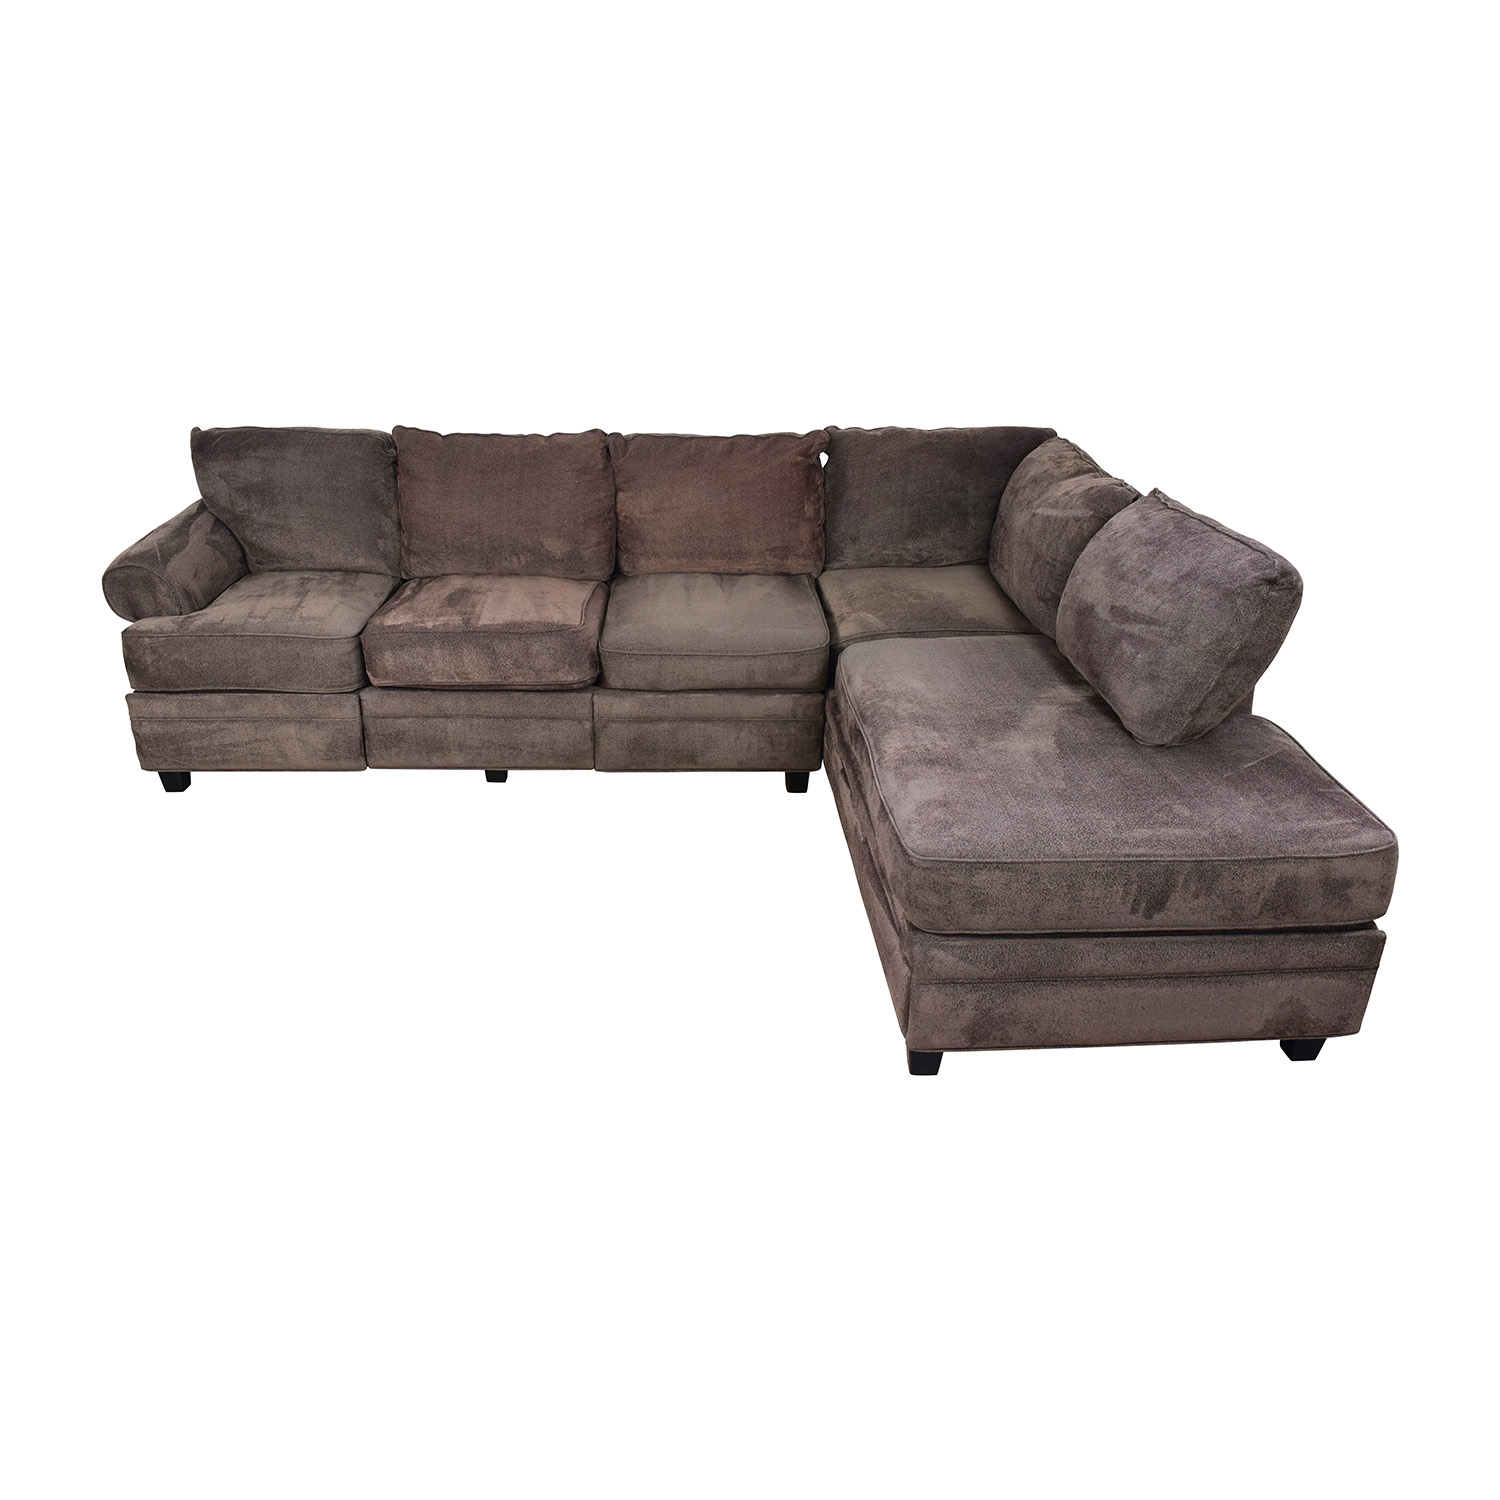 buy Bobs Furniture Brown Sectional with Storage Bobs Furniture Sectionals